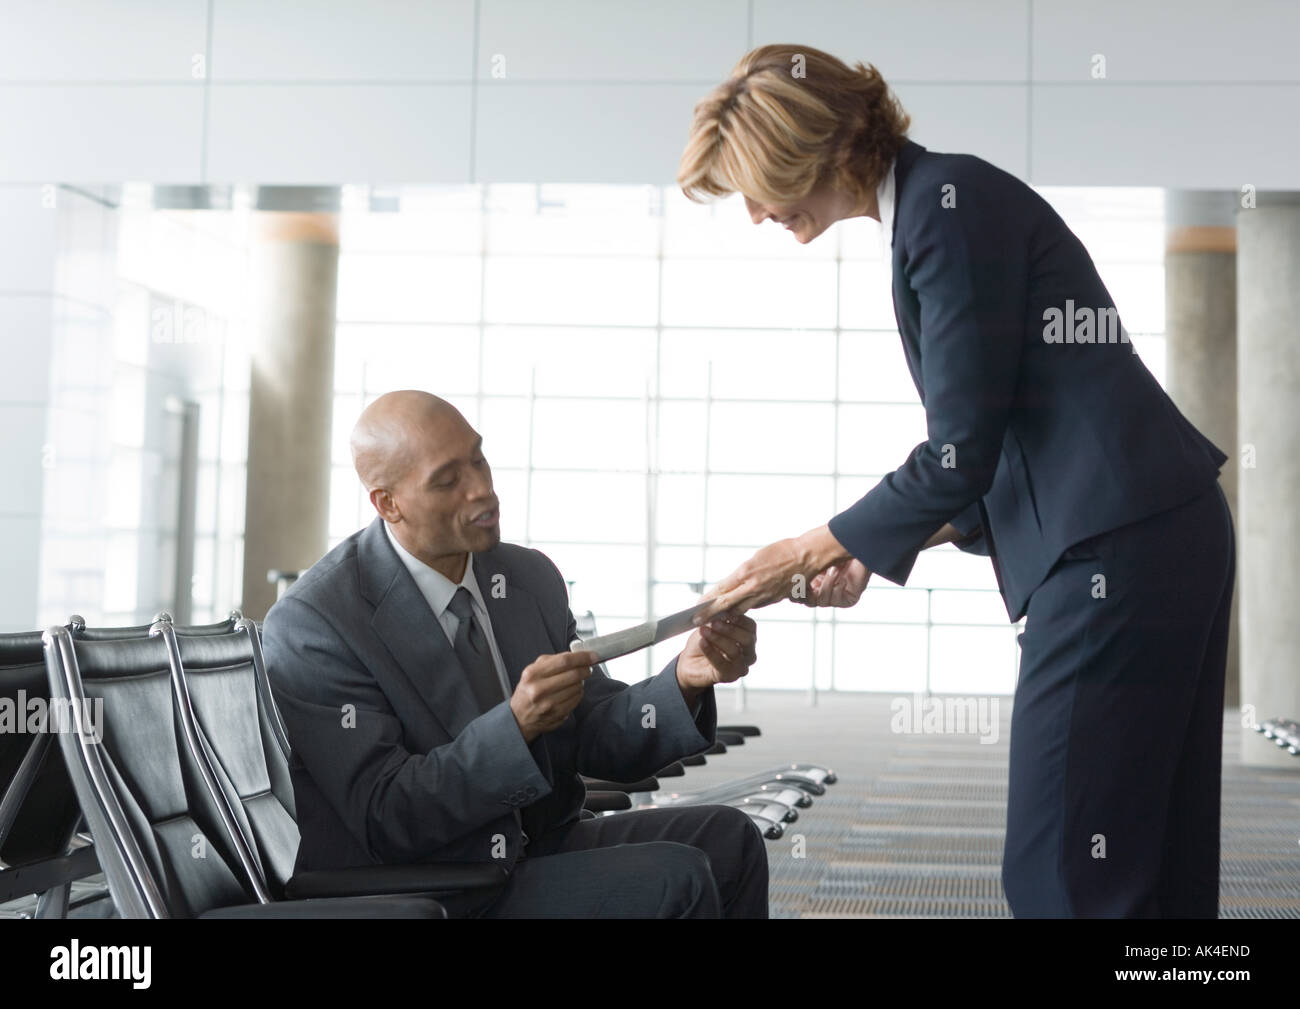 Airline attendant handing seated businessman a ticket - Stock Image